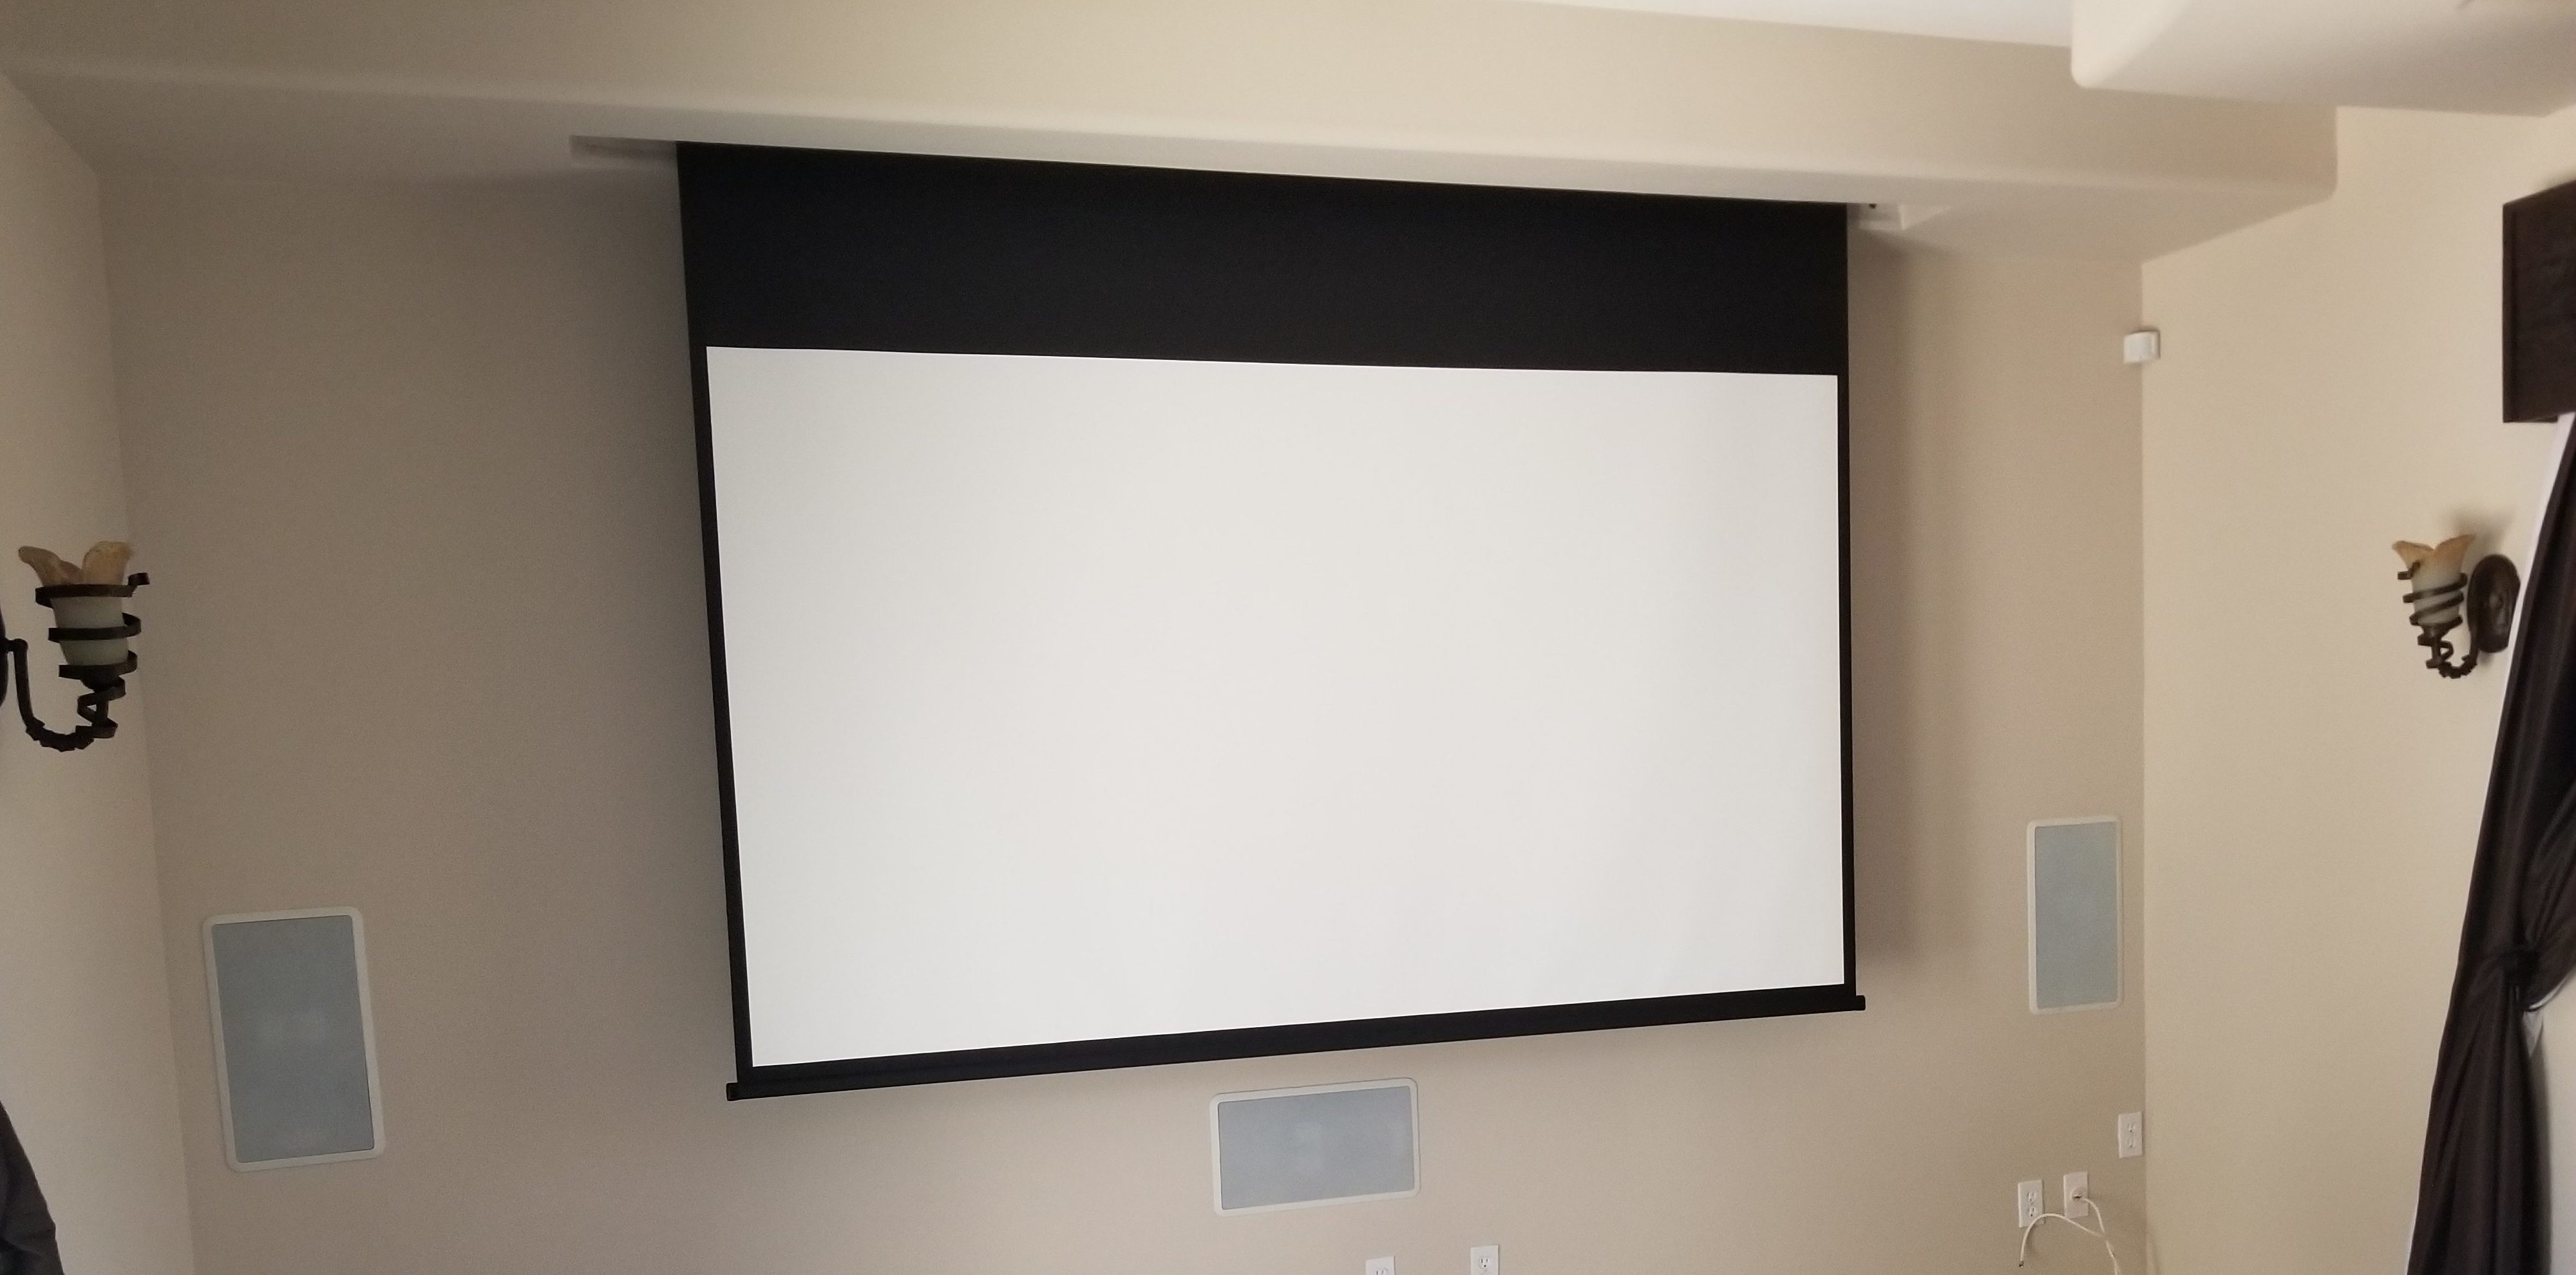 PROJECTOR AND PROJECTOR SCREEN INSTALLATION